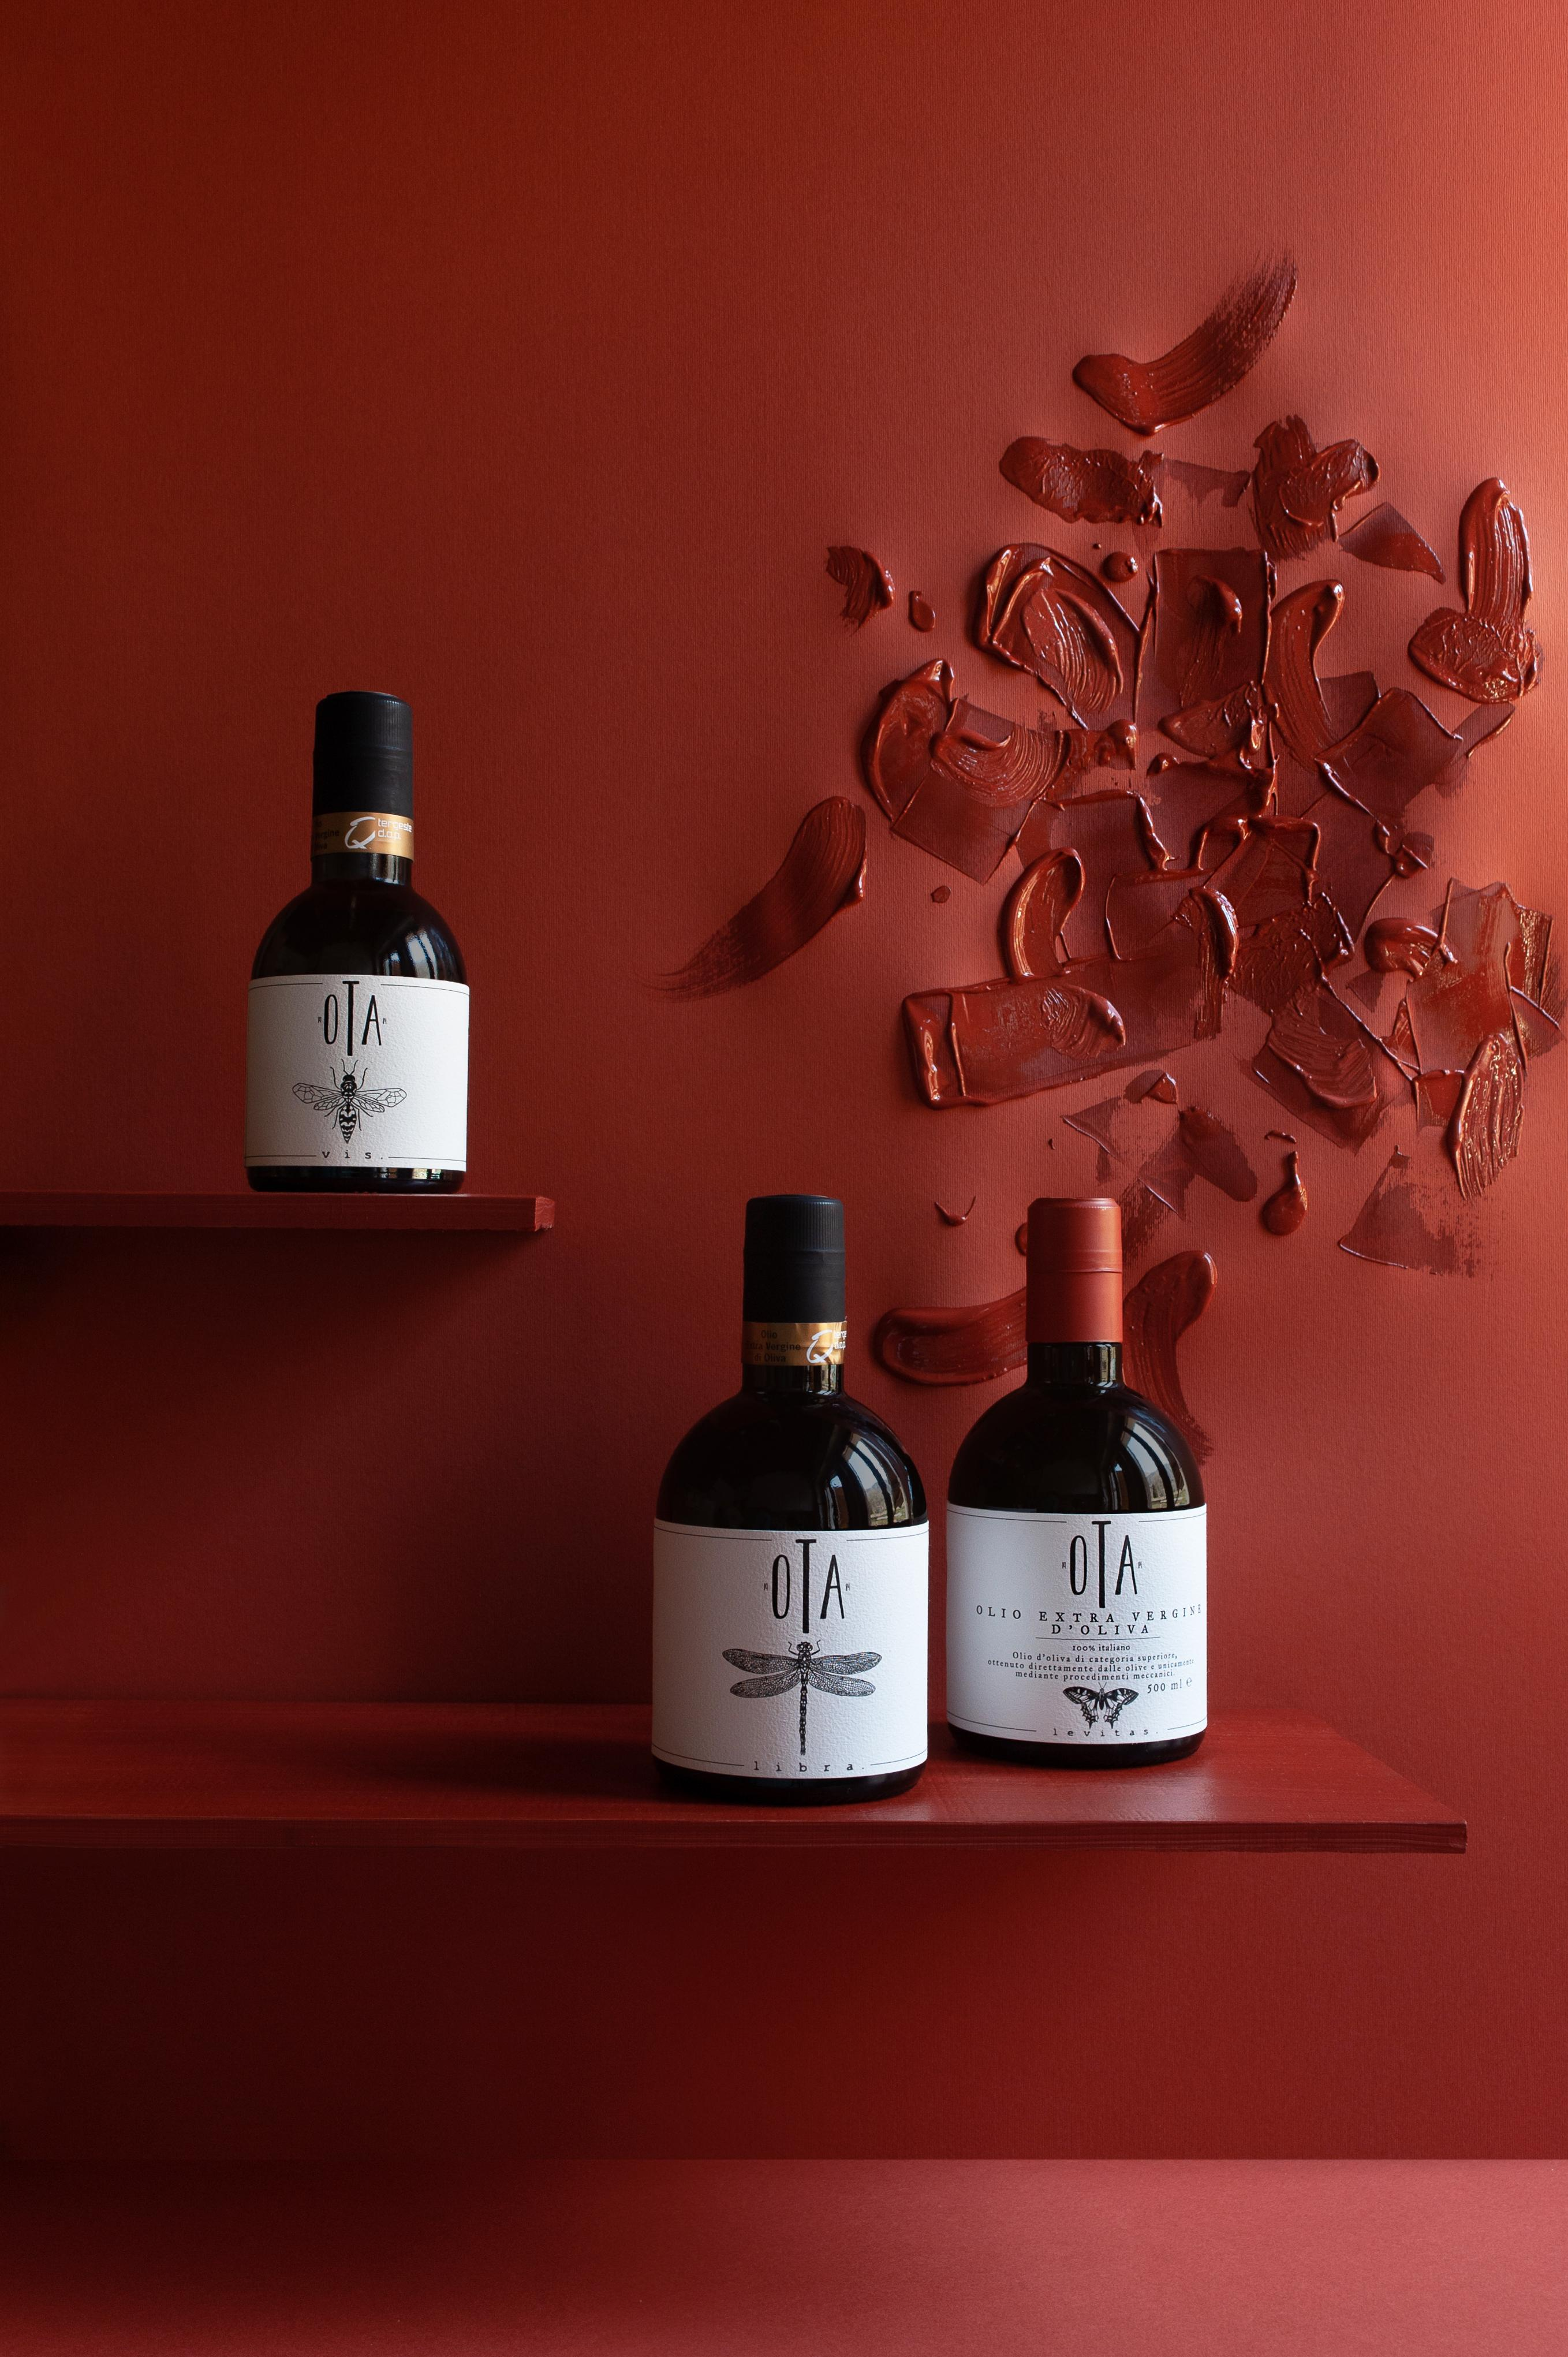 Product Naming and Packaging Design for Olive Oil Bottles